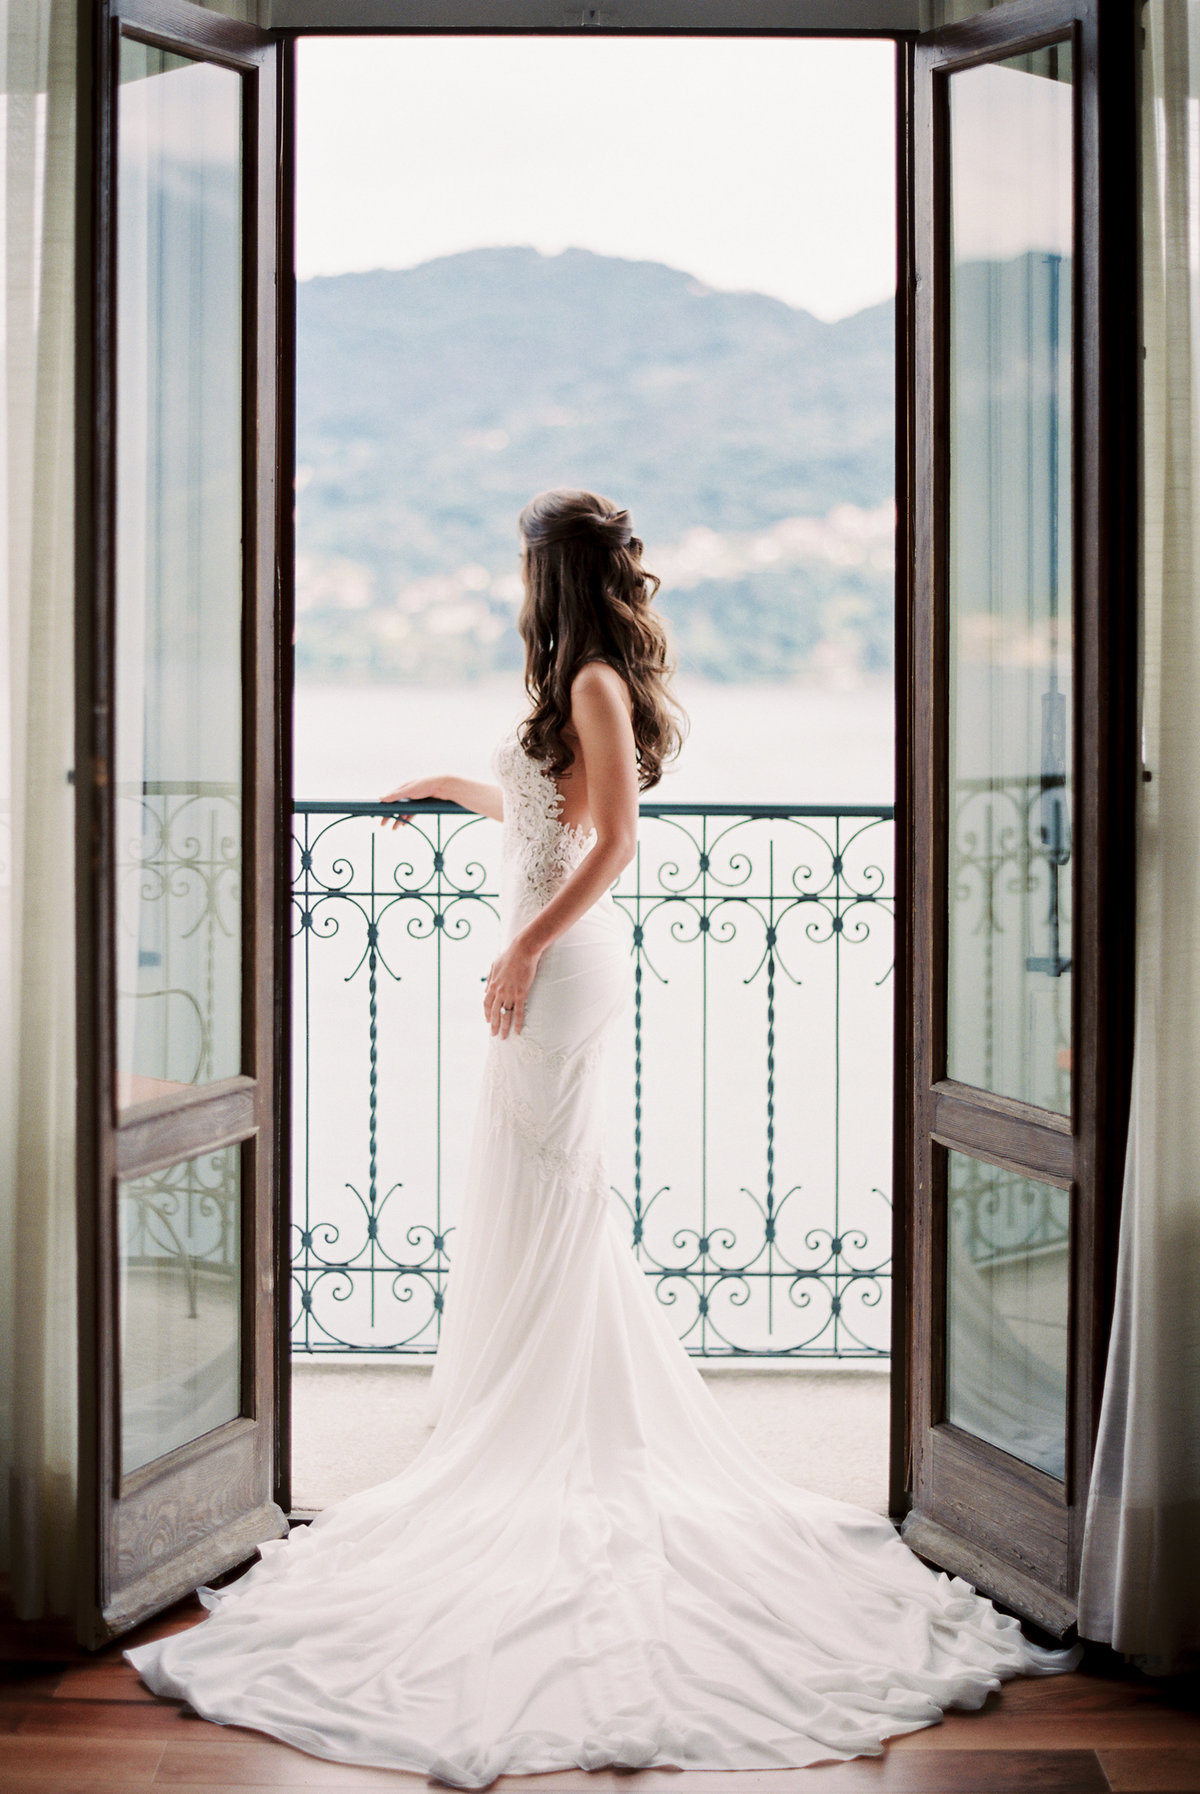 lake-como-italy-destination-wedding-melanie-gabrielle-photogrpahy-138